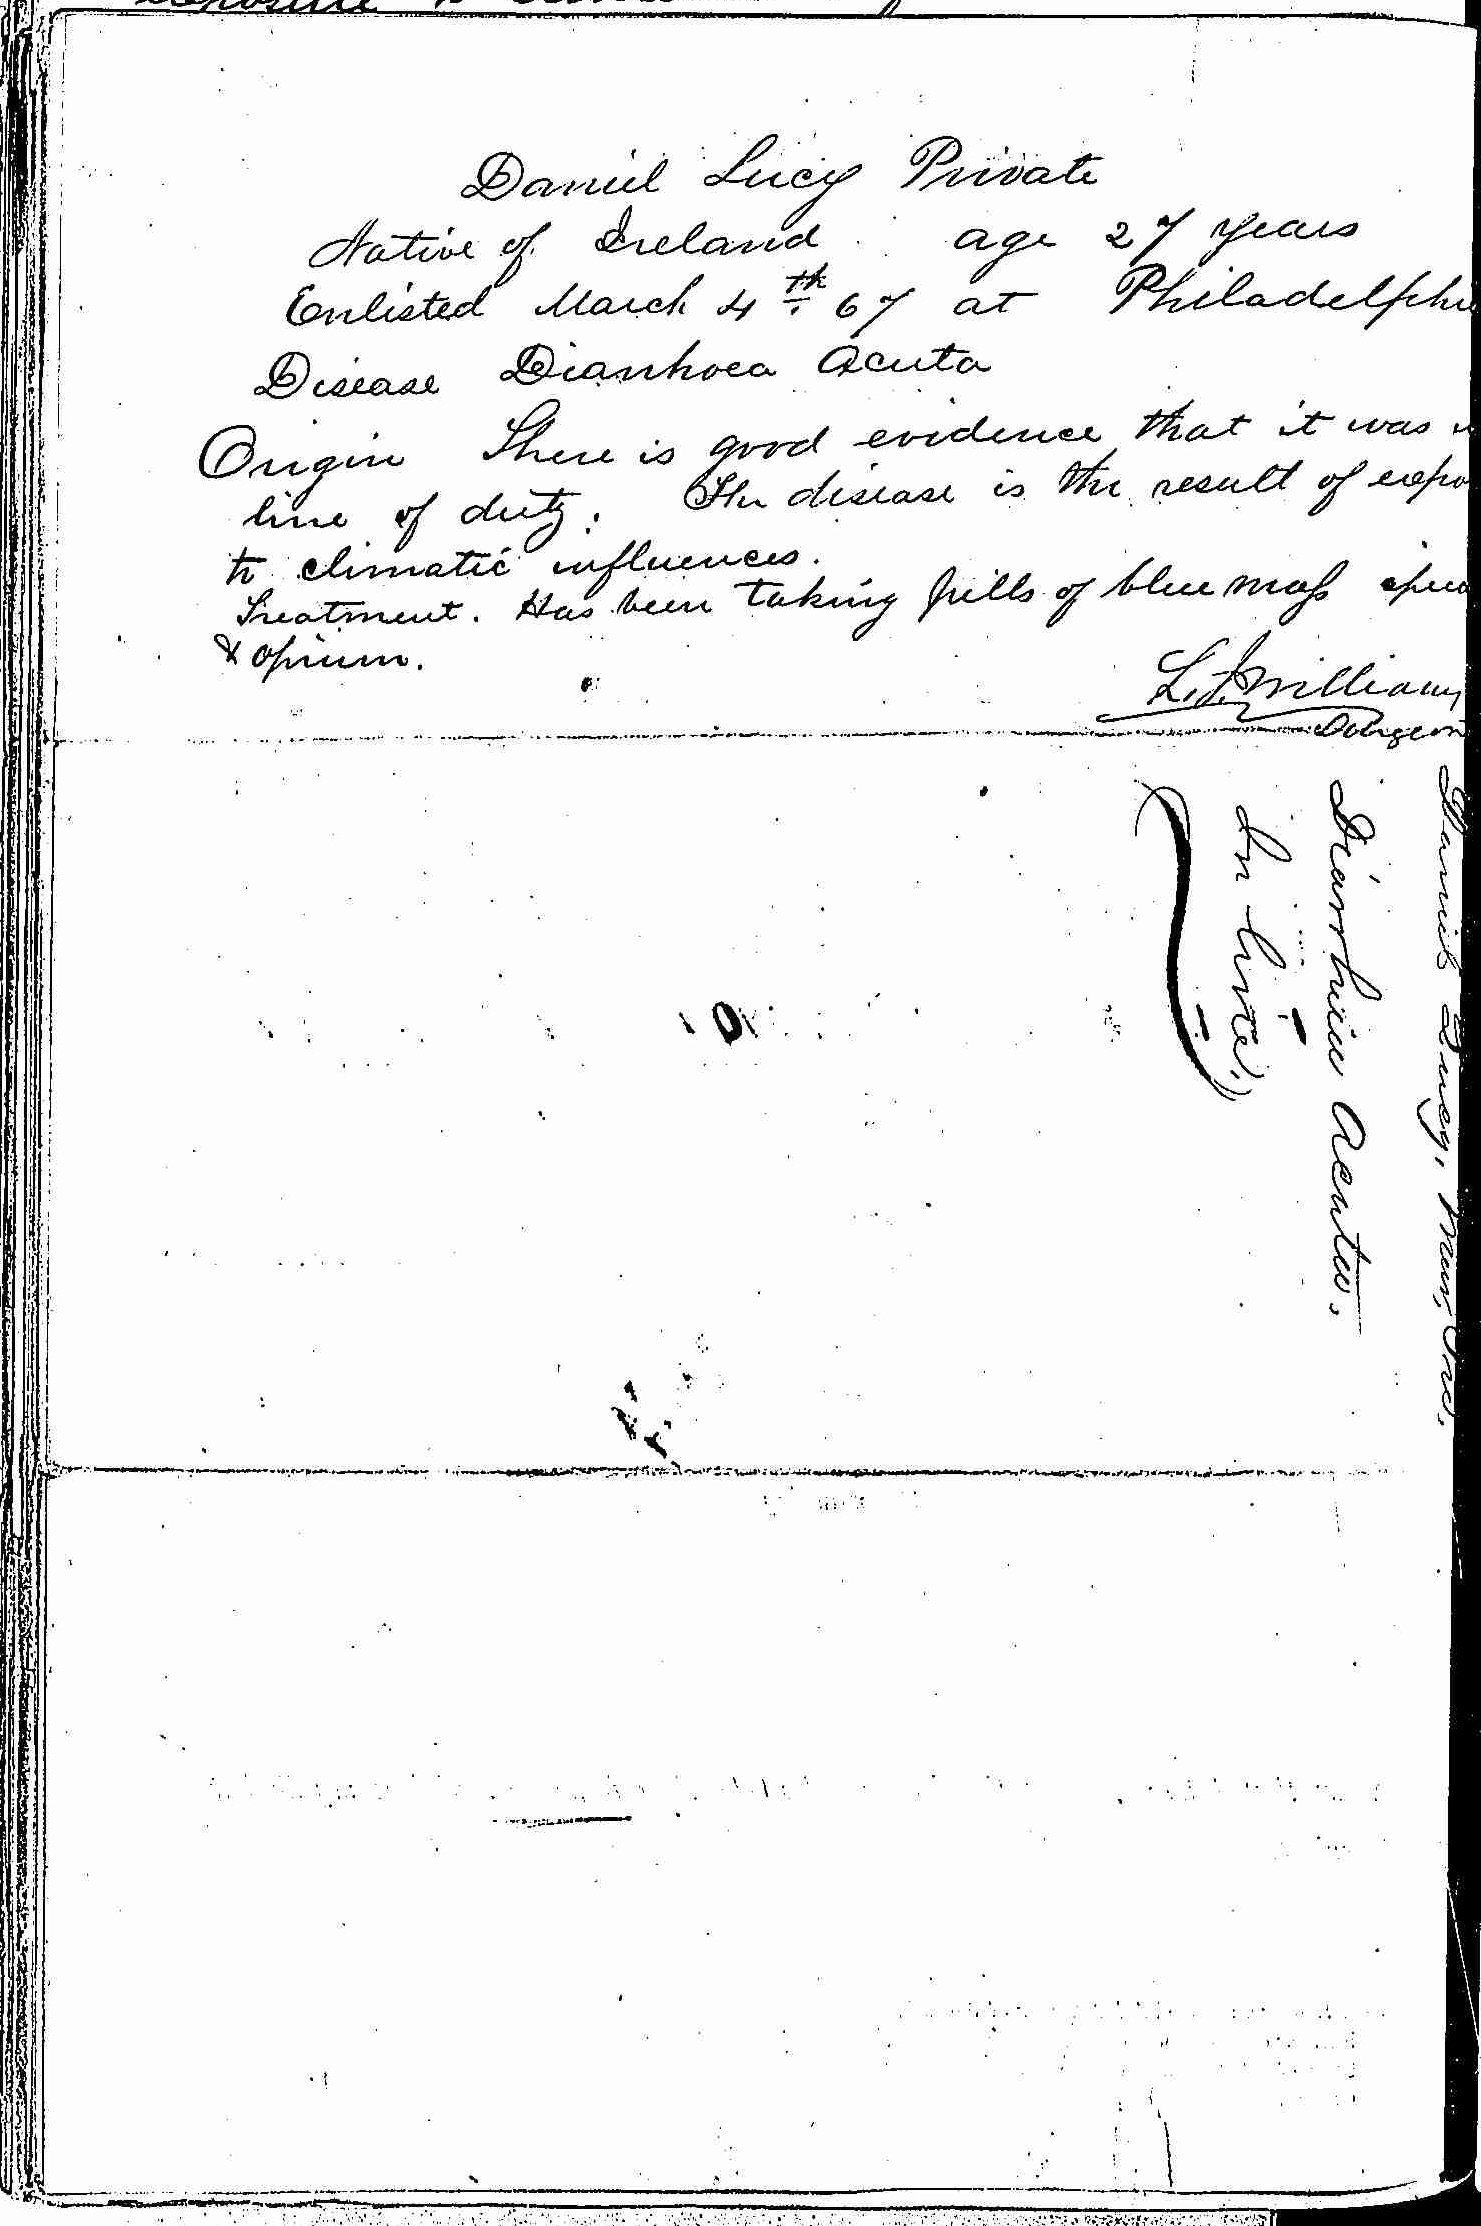 Entry for Daniel Lucy (page 2 of 2) in the log Hospital Tickets and Case Papers - Naval Hospital - Washington, D.C. - 1866-68